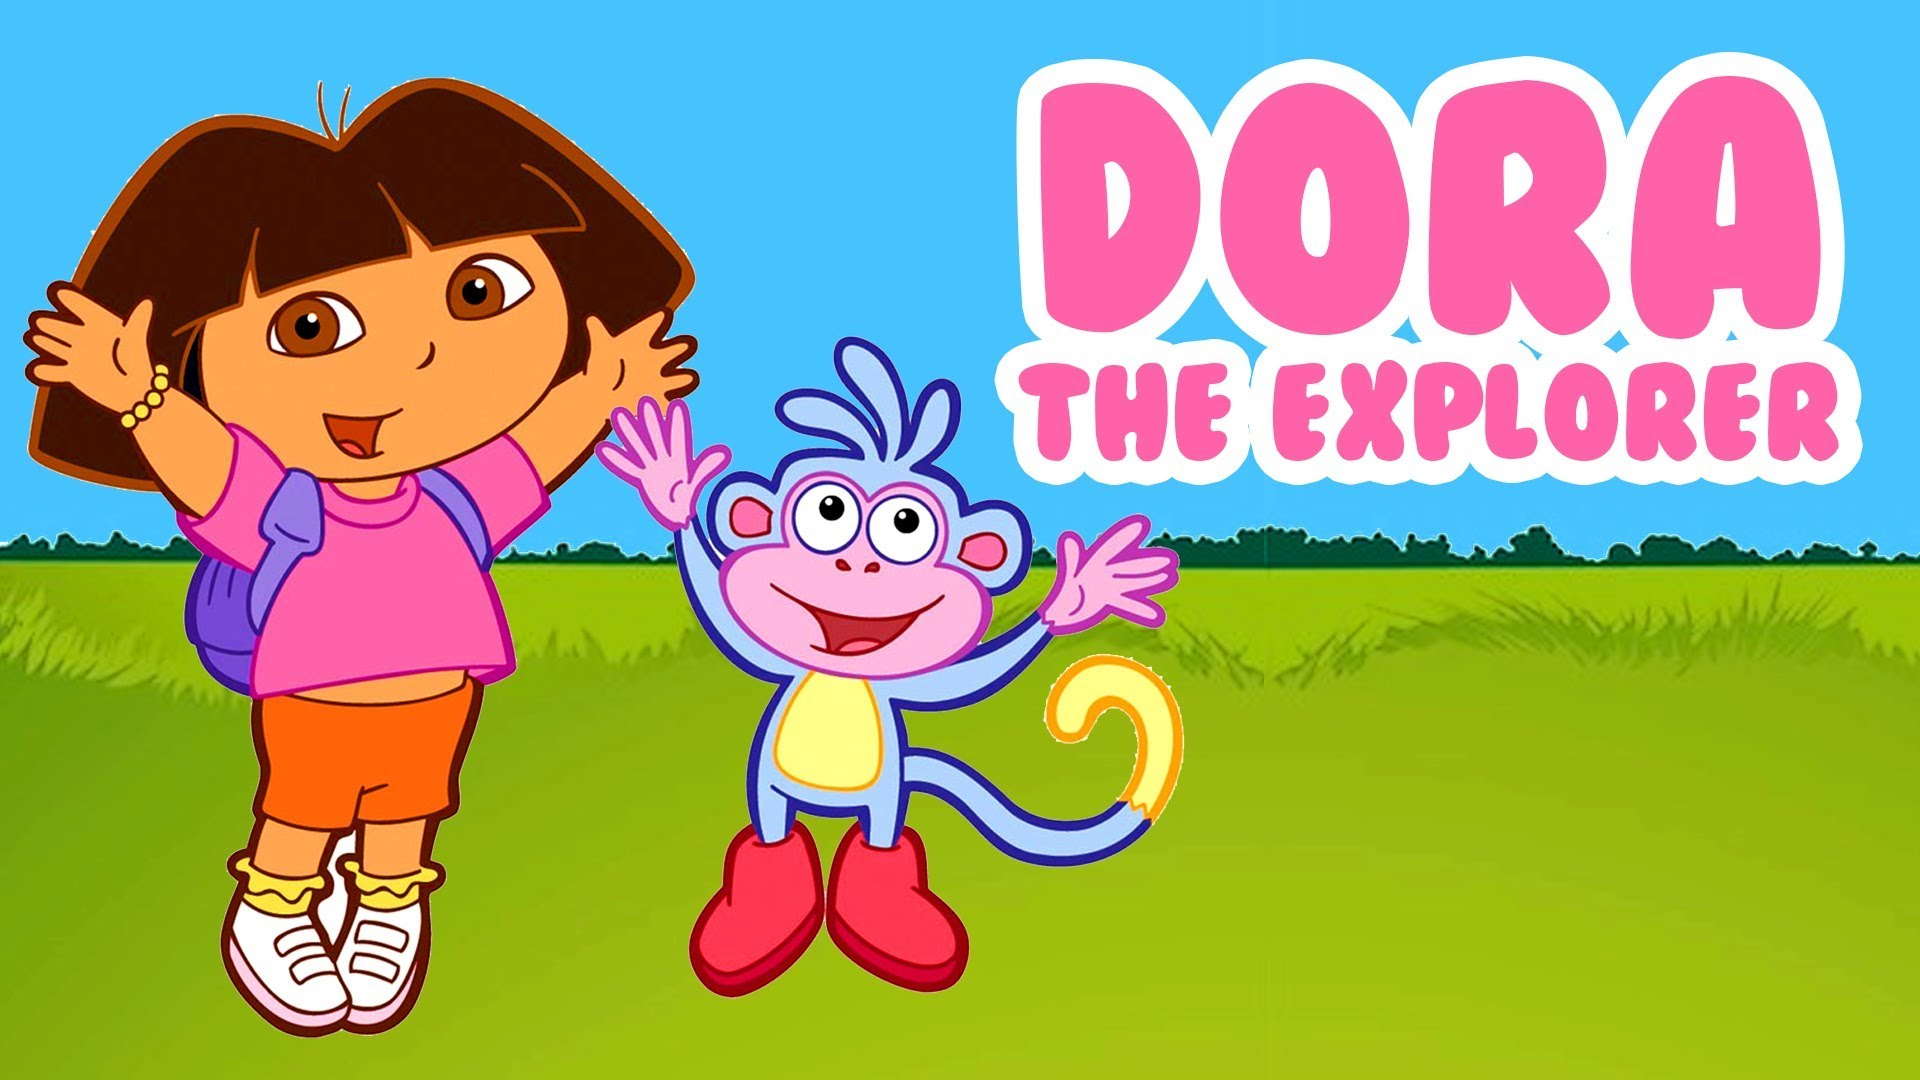 DORA THE EXPLORER LIVE ACTION FILM TO FEATURE THE WALL